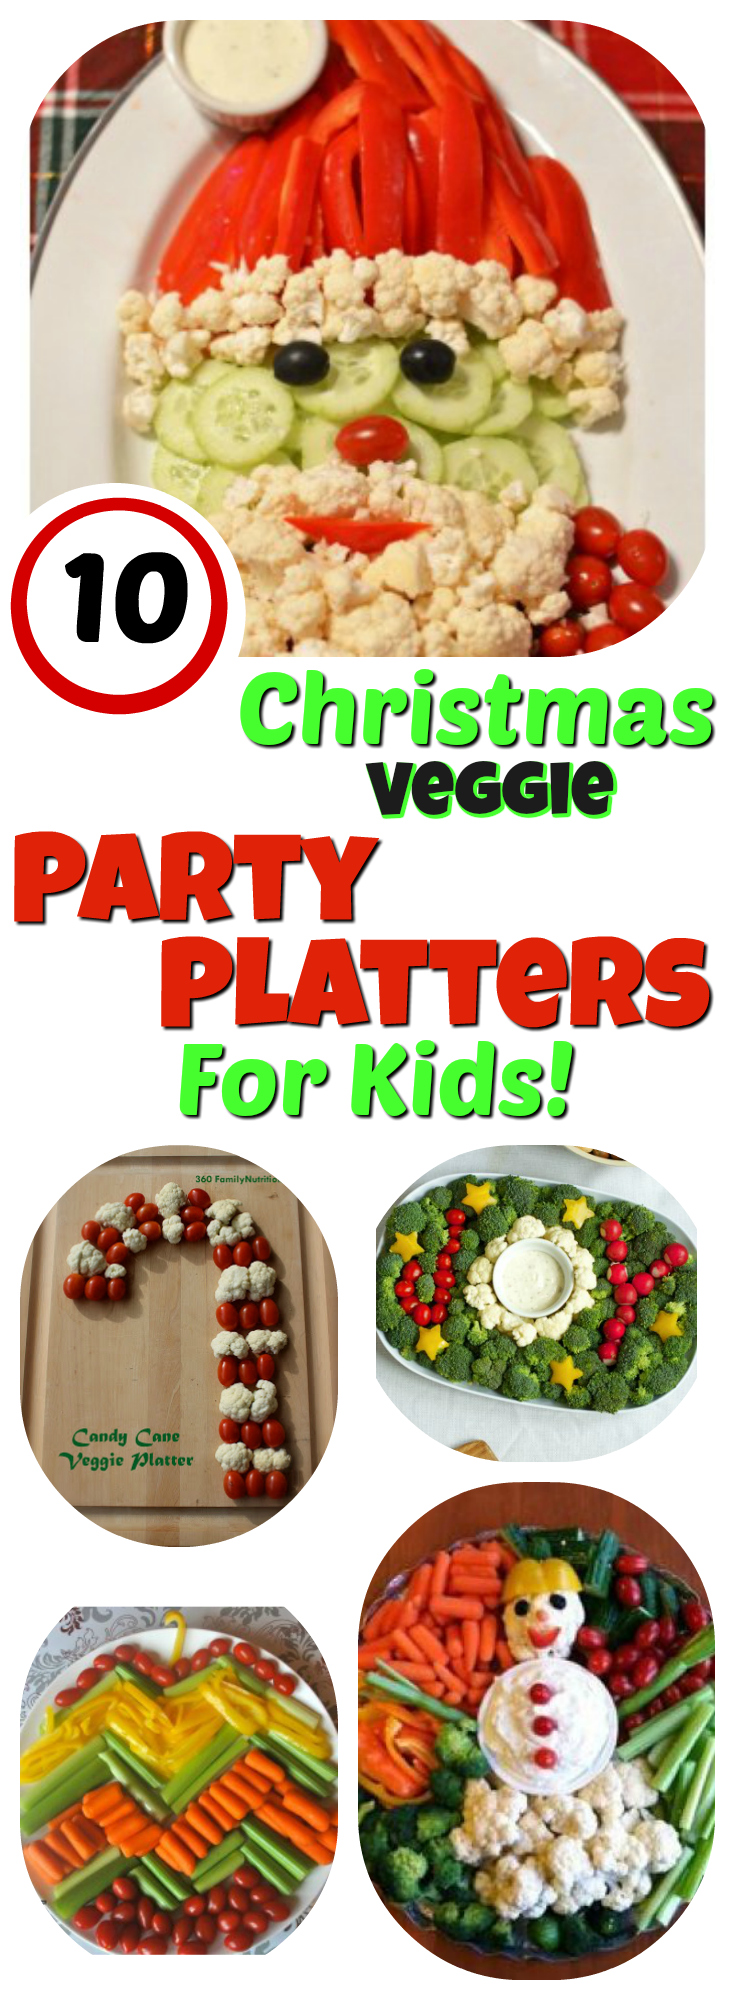 Christmas Platters And Trays.Veggie Platters For Kids 10 Christmas Party Trays